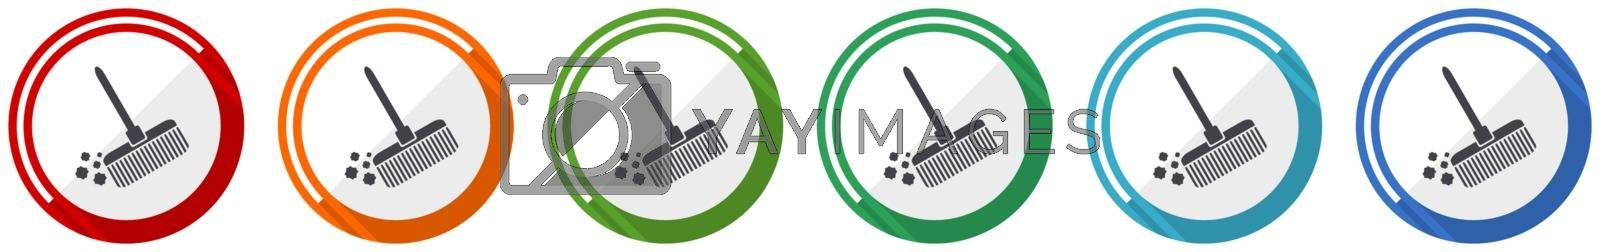 Broom icon set, flat design vector illustration in 6 colors options for webdesign and mobile applications